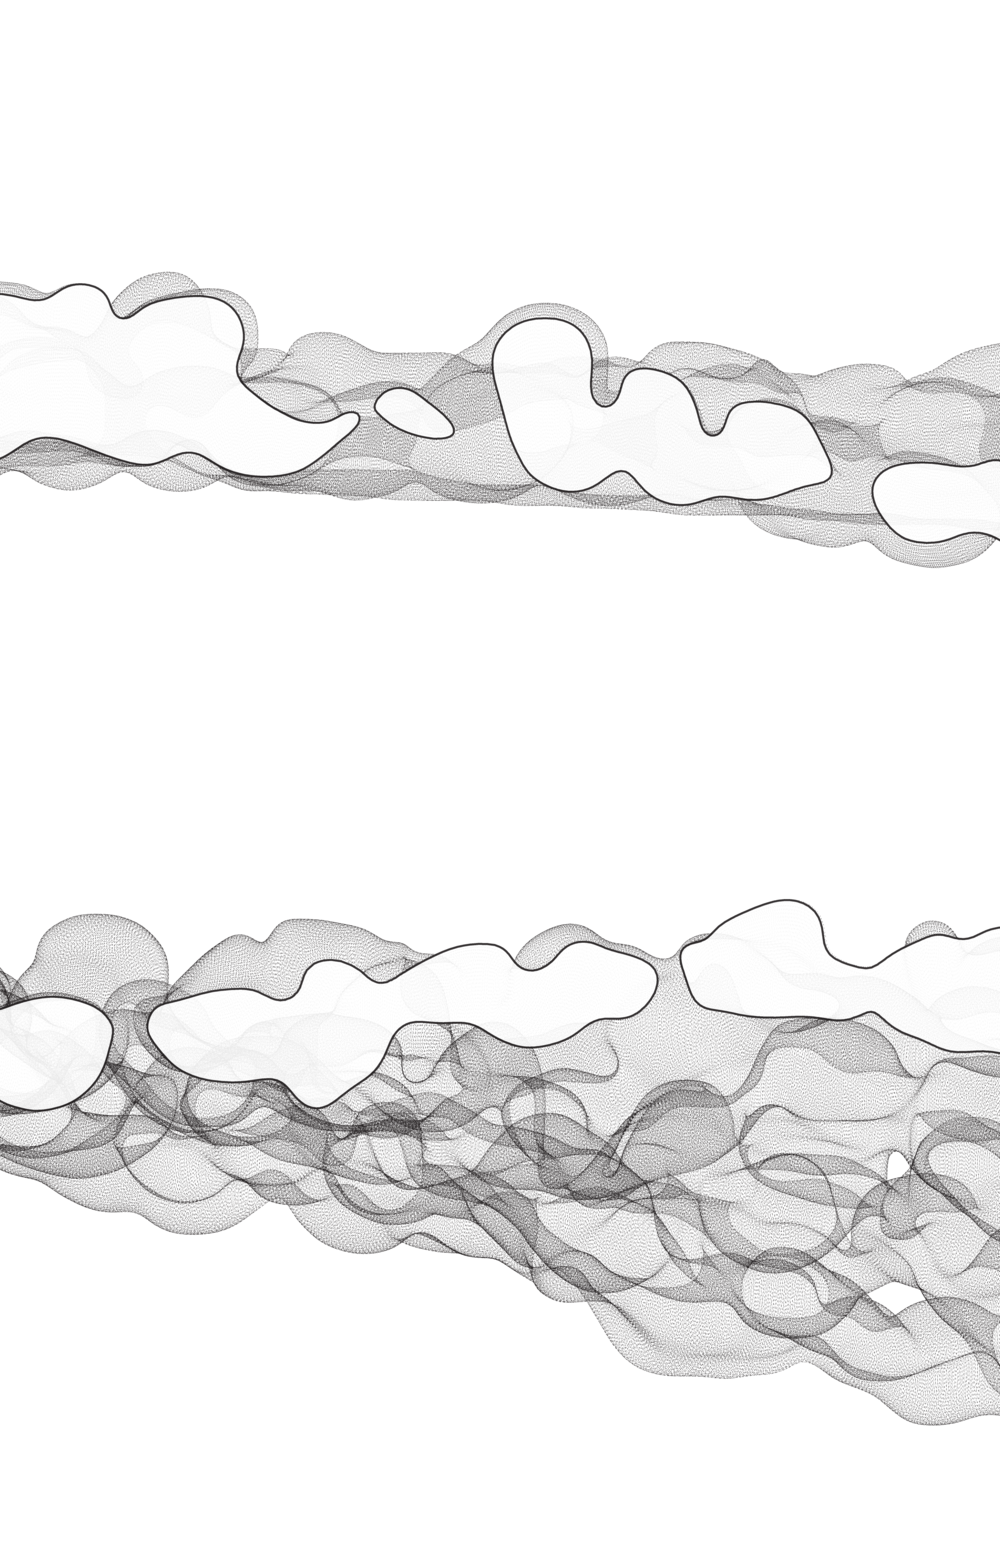 2014-04-04 - PHASE II - DRAWINGS - sections [Converted]-01 -wb.png